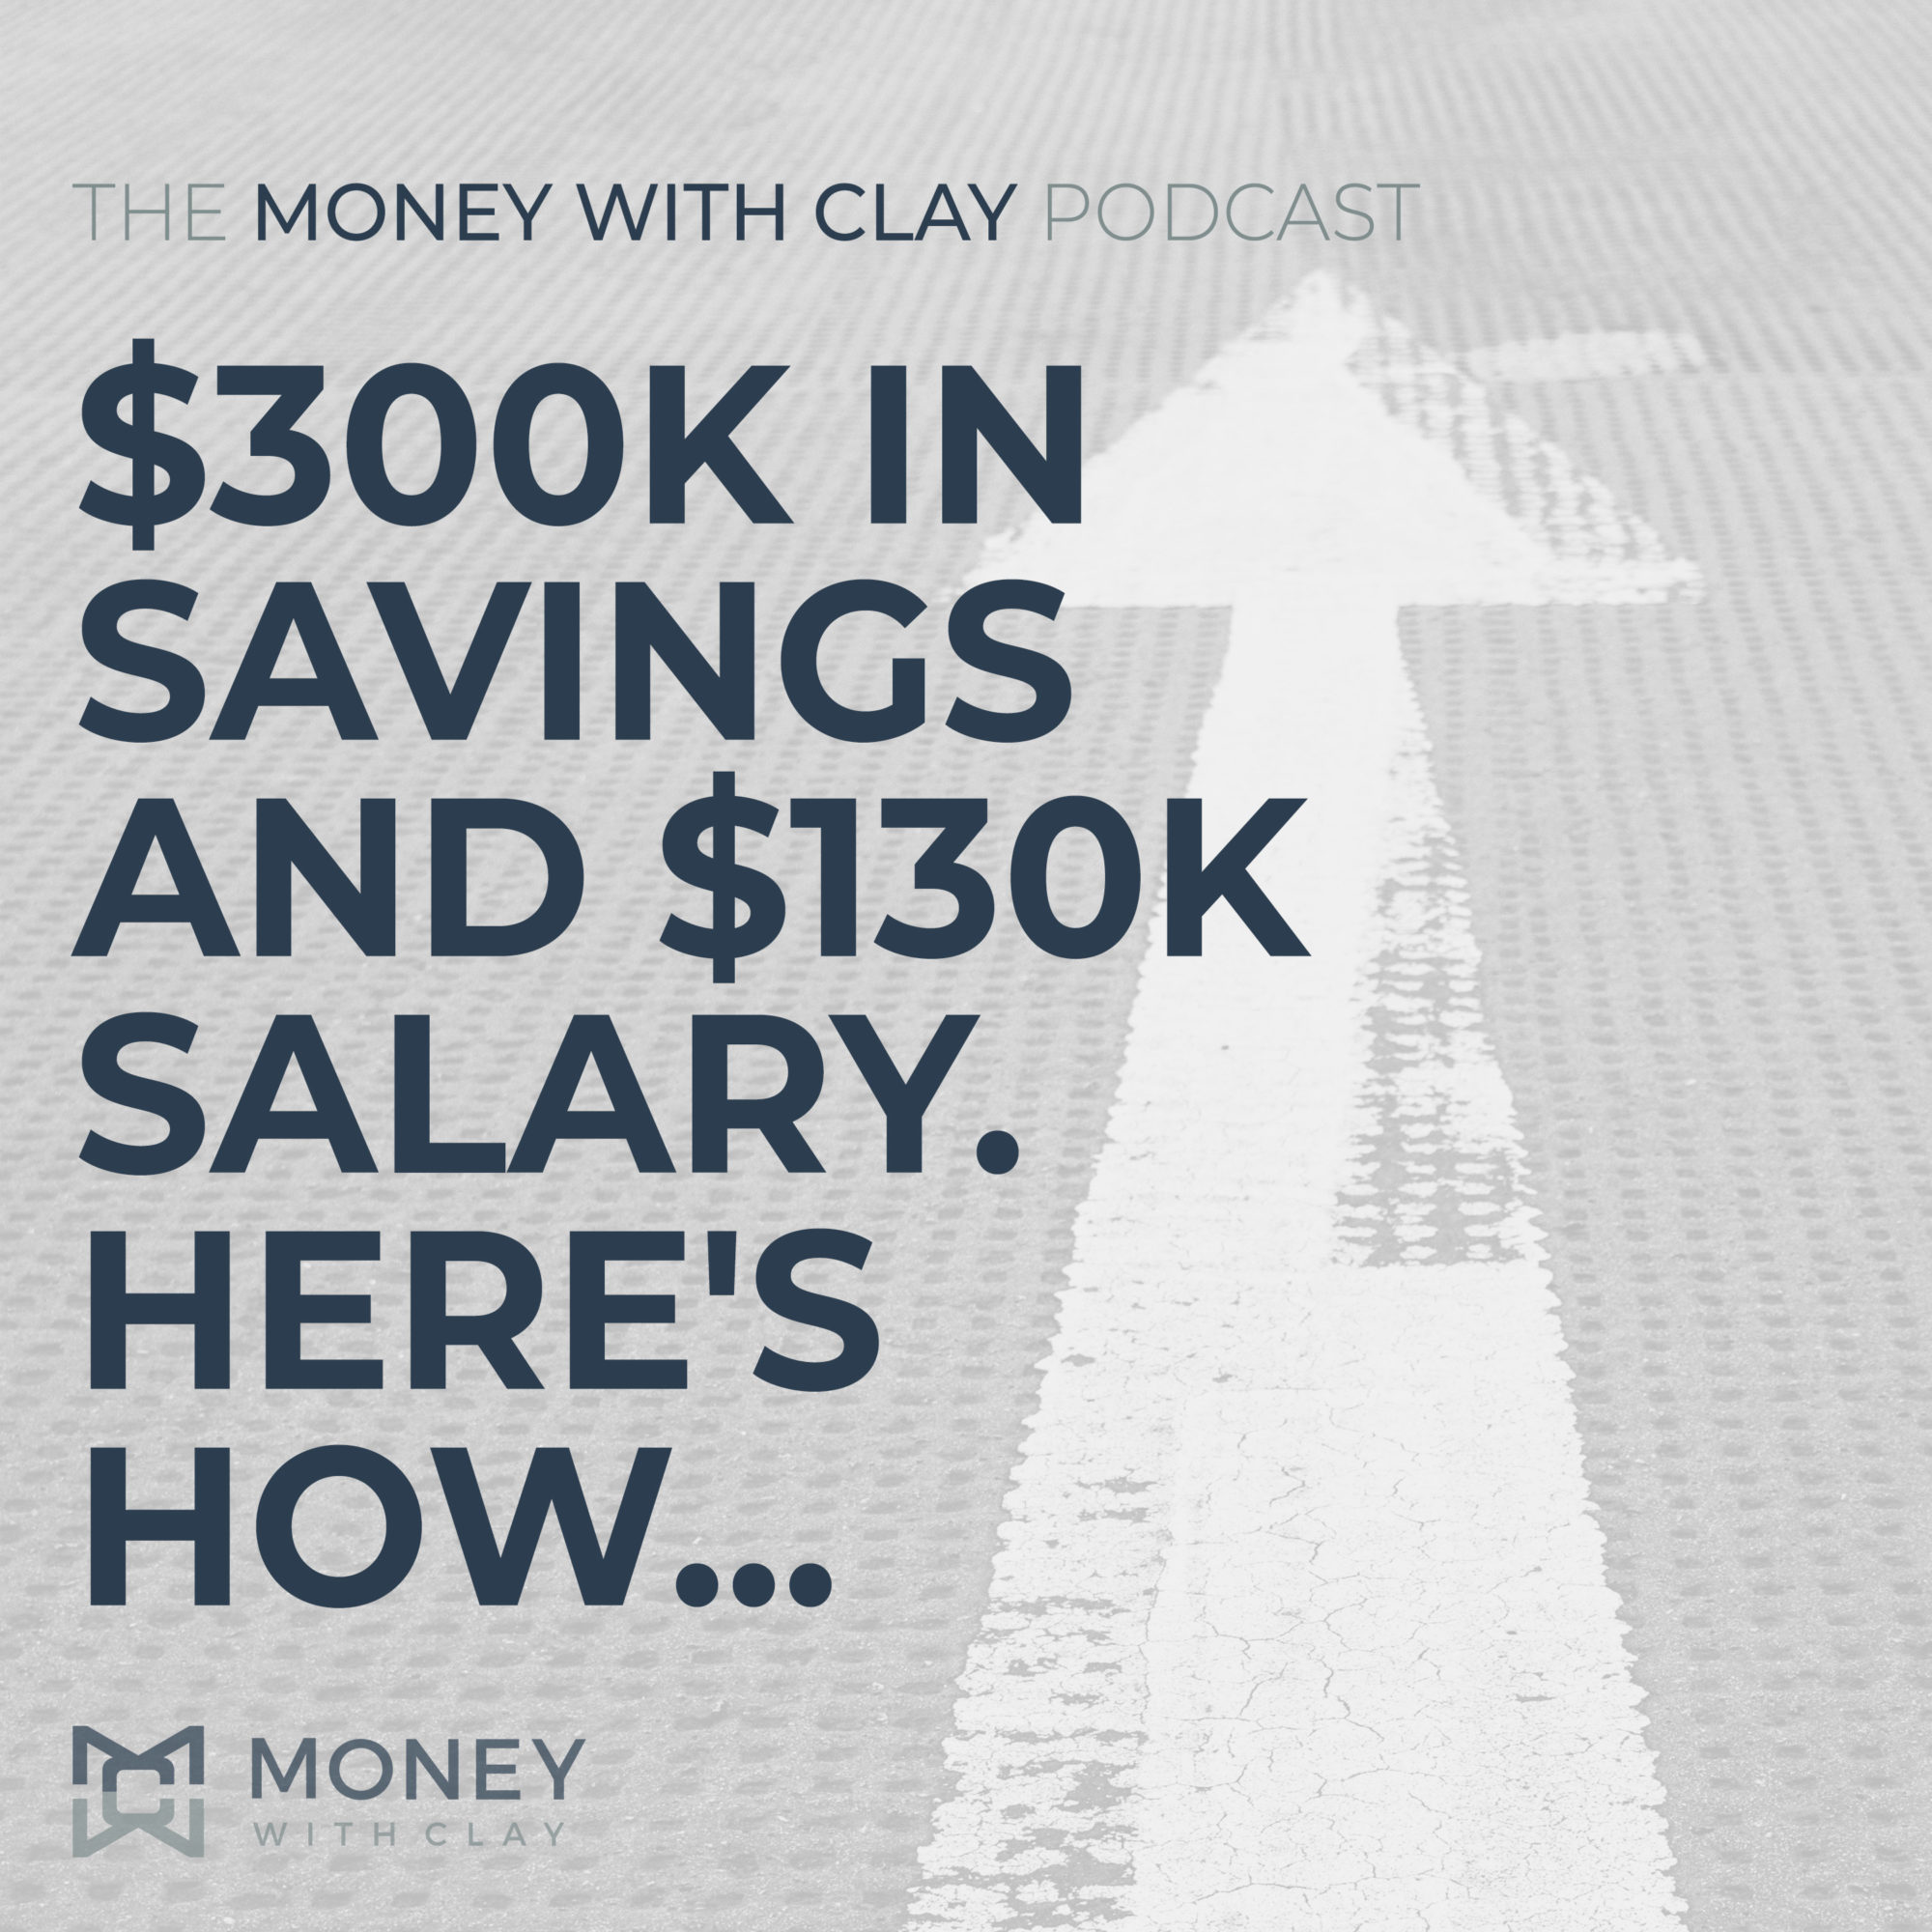 #075 - $300,000 in Savings and $130,000 Salary. Here's How...